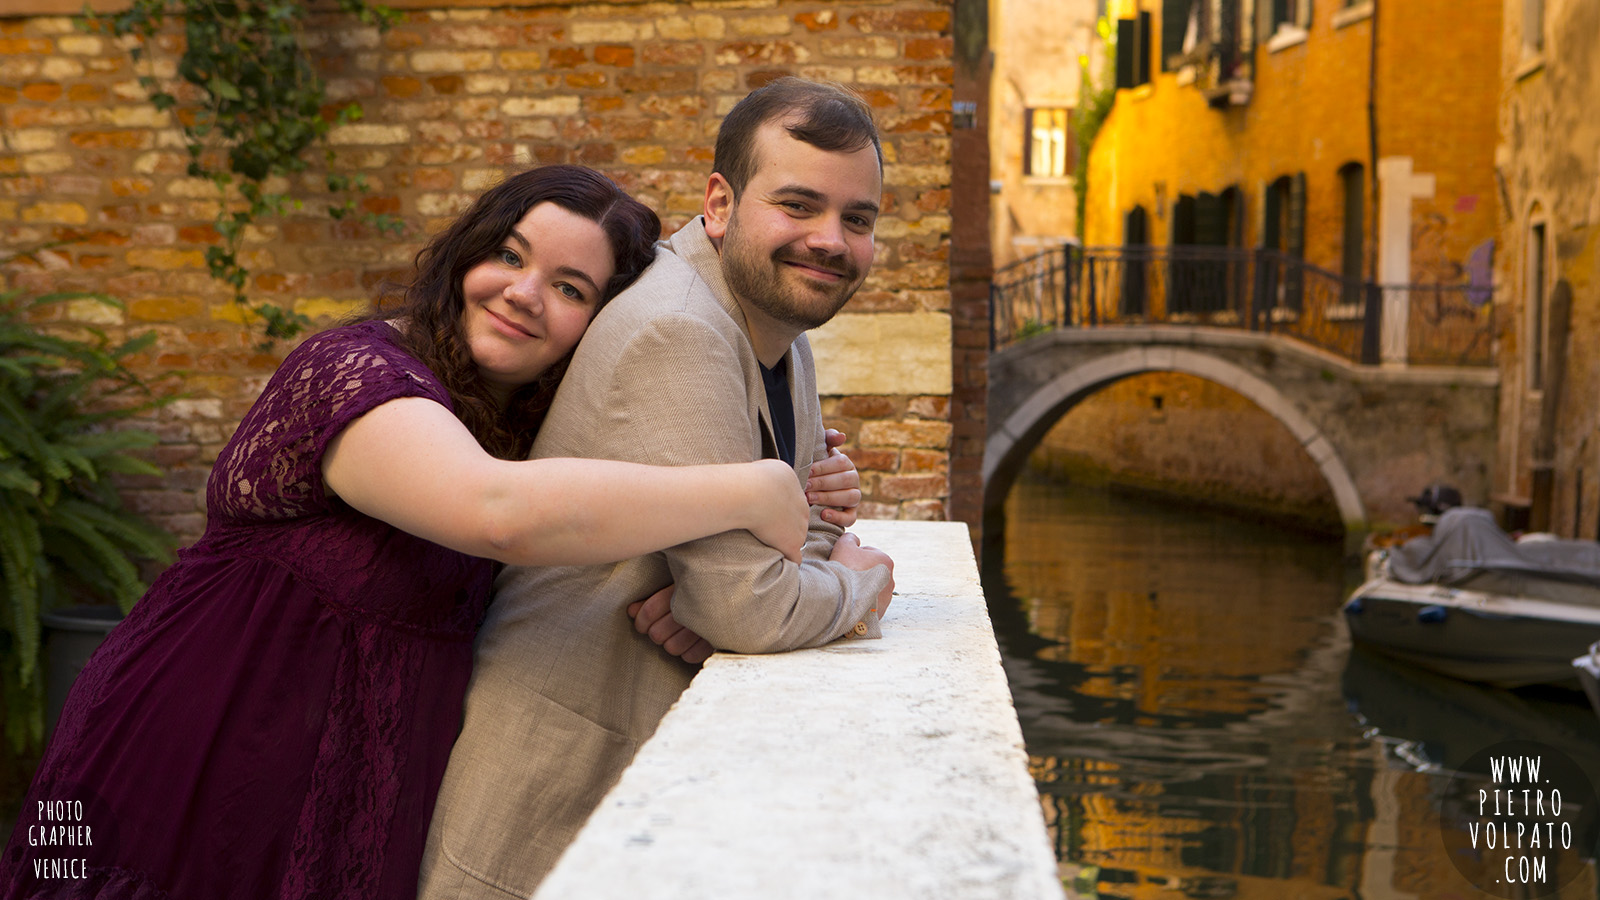 photographer venice photo shoot love story couple vacation